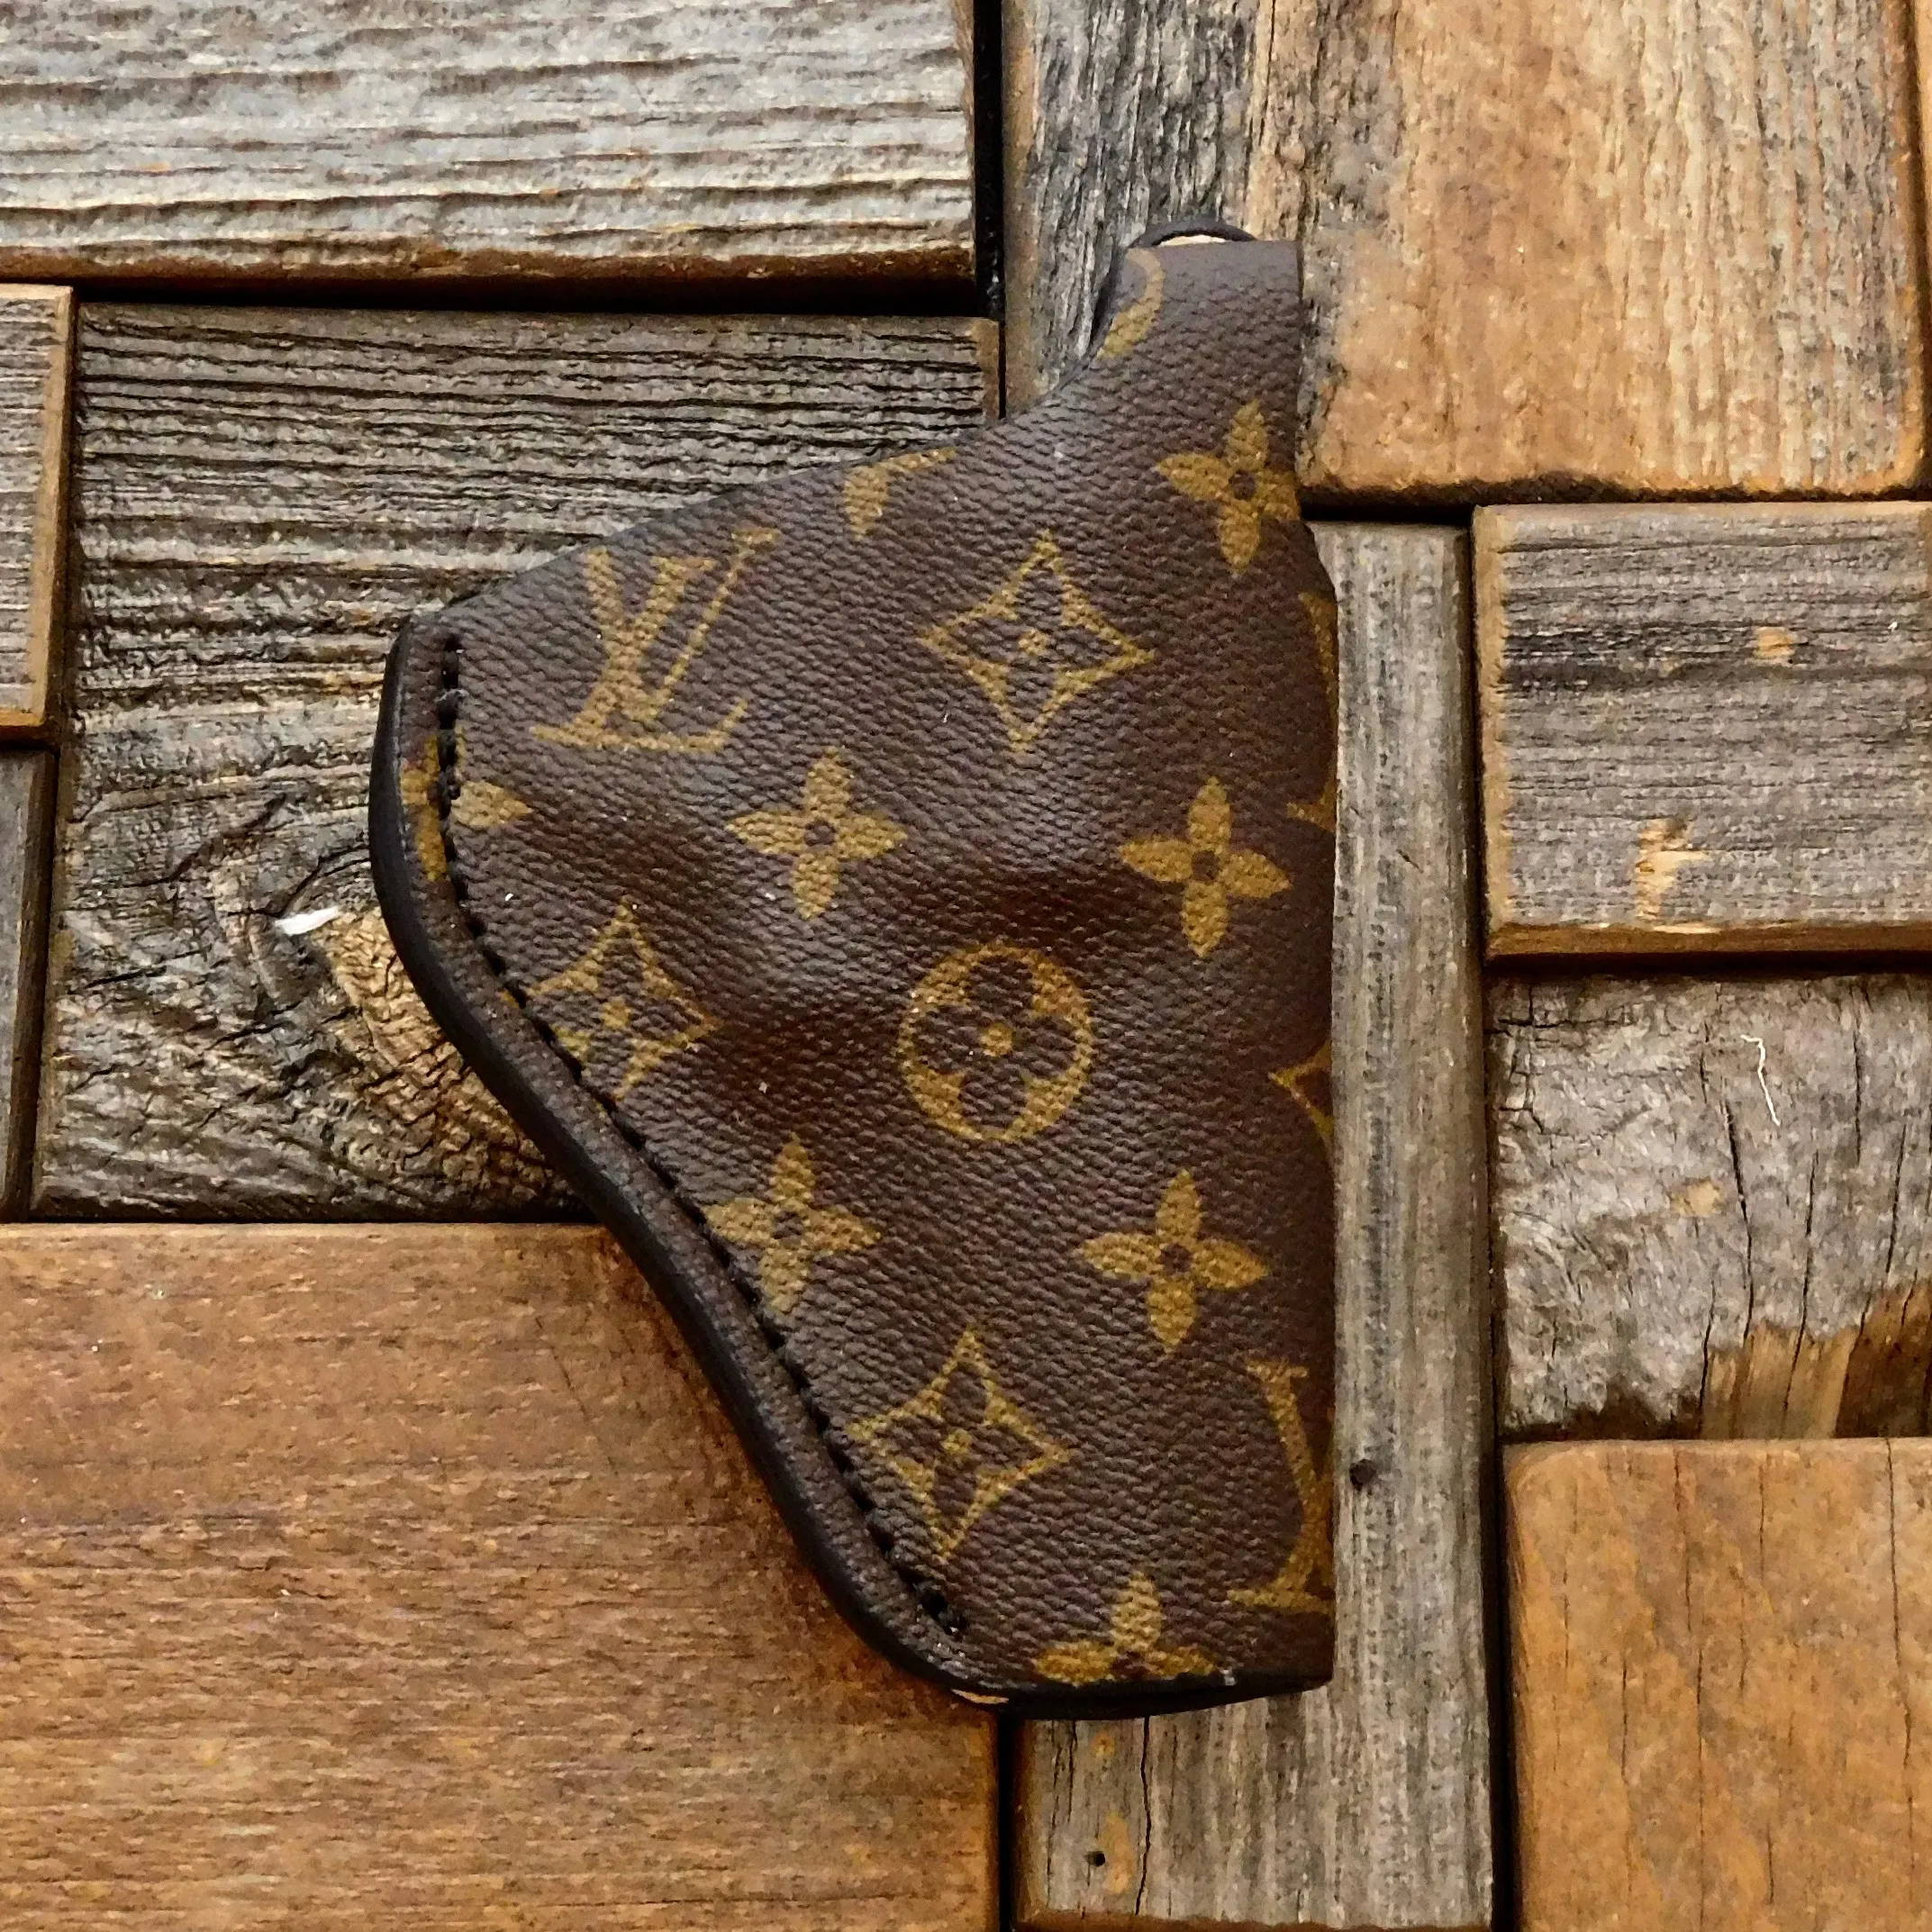 custom IWB holster concealed carry